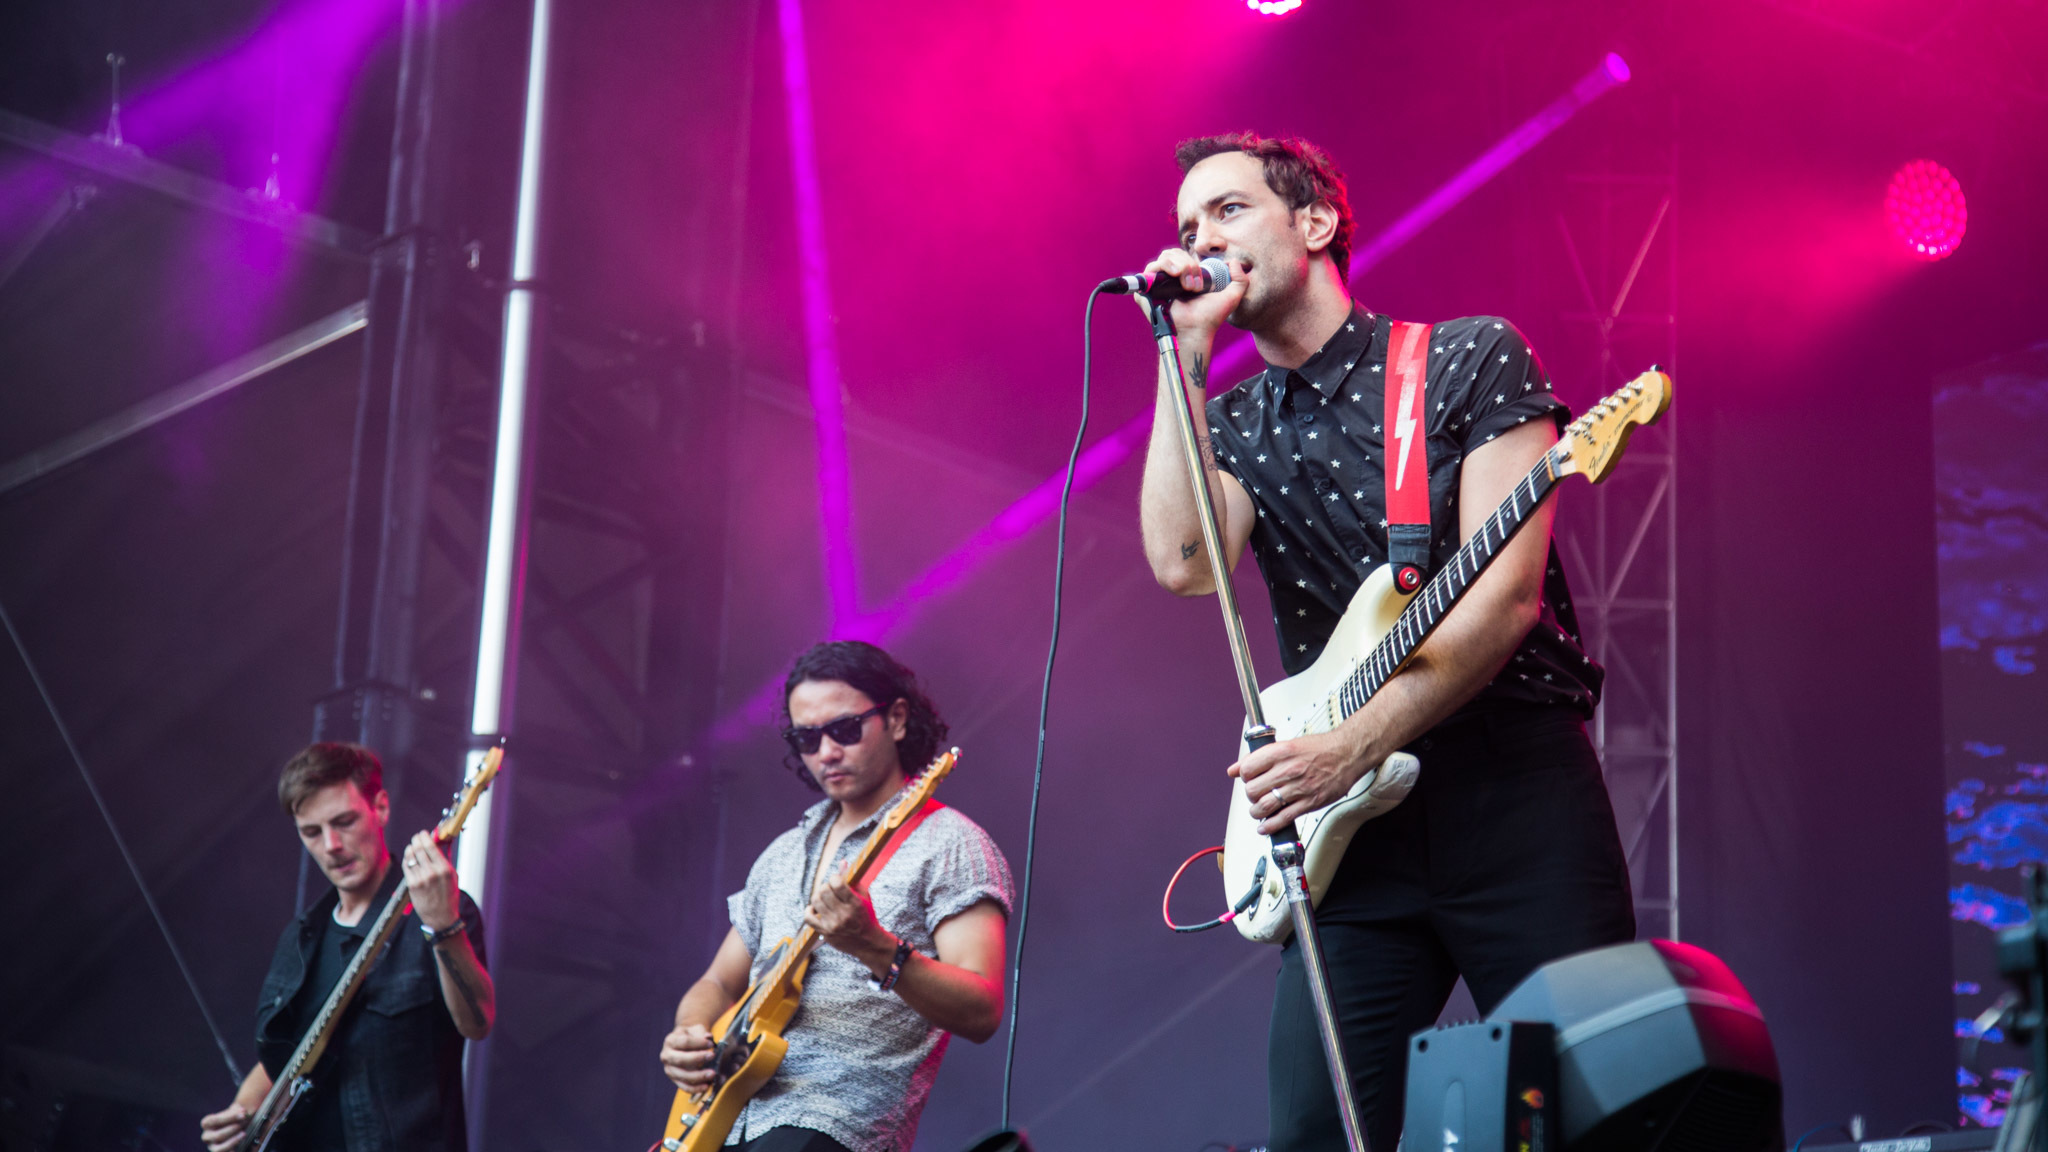 Albert Hammond Jr. hit the stage in Grant Park on the final day of Lollapalooza on August 2, 2015.